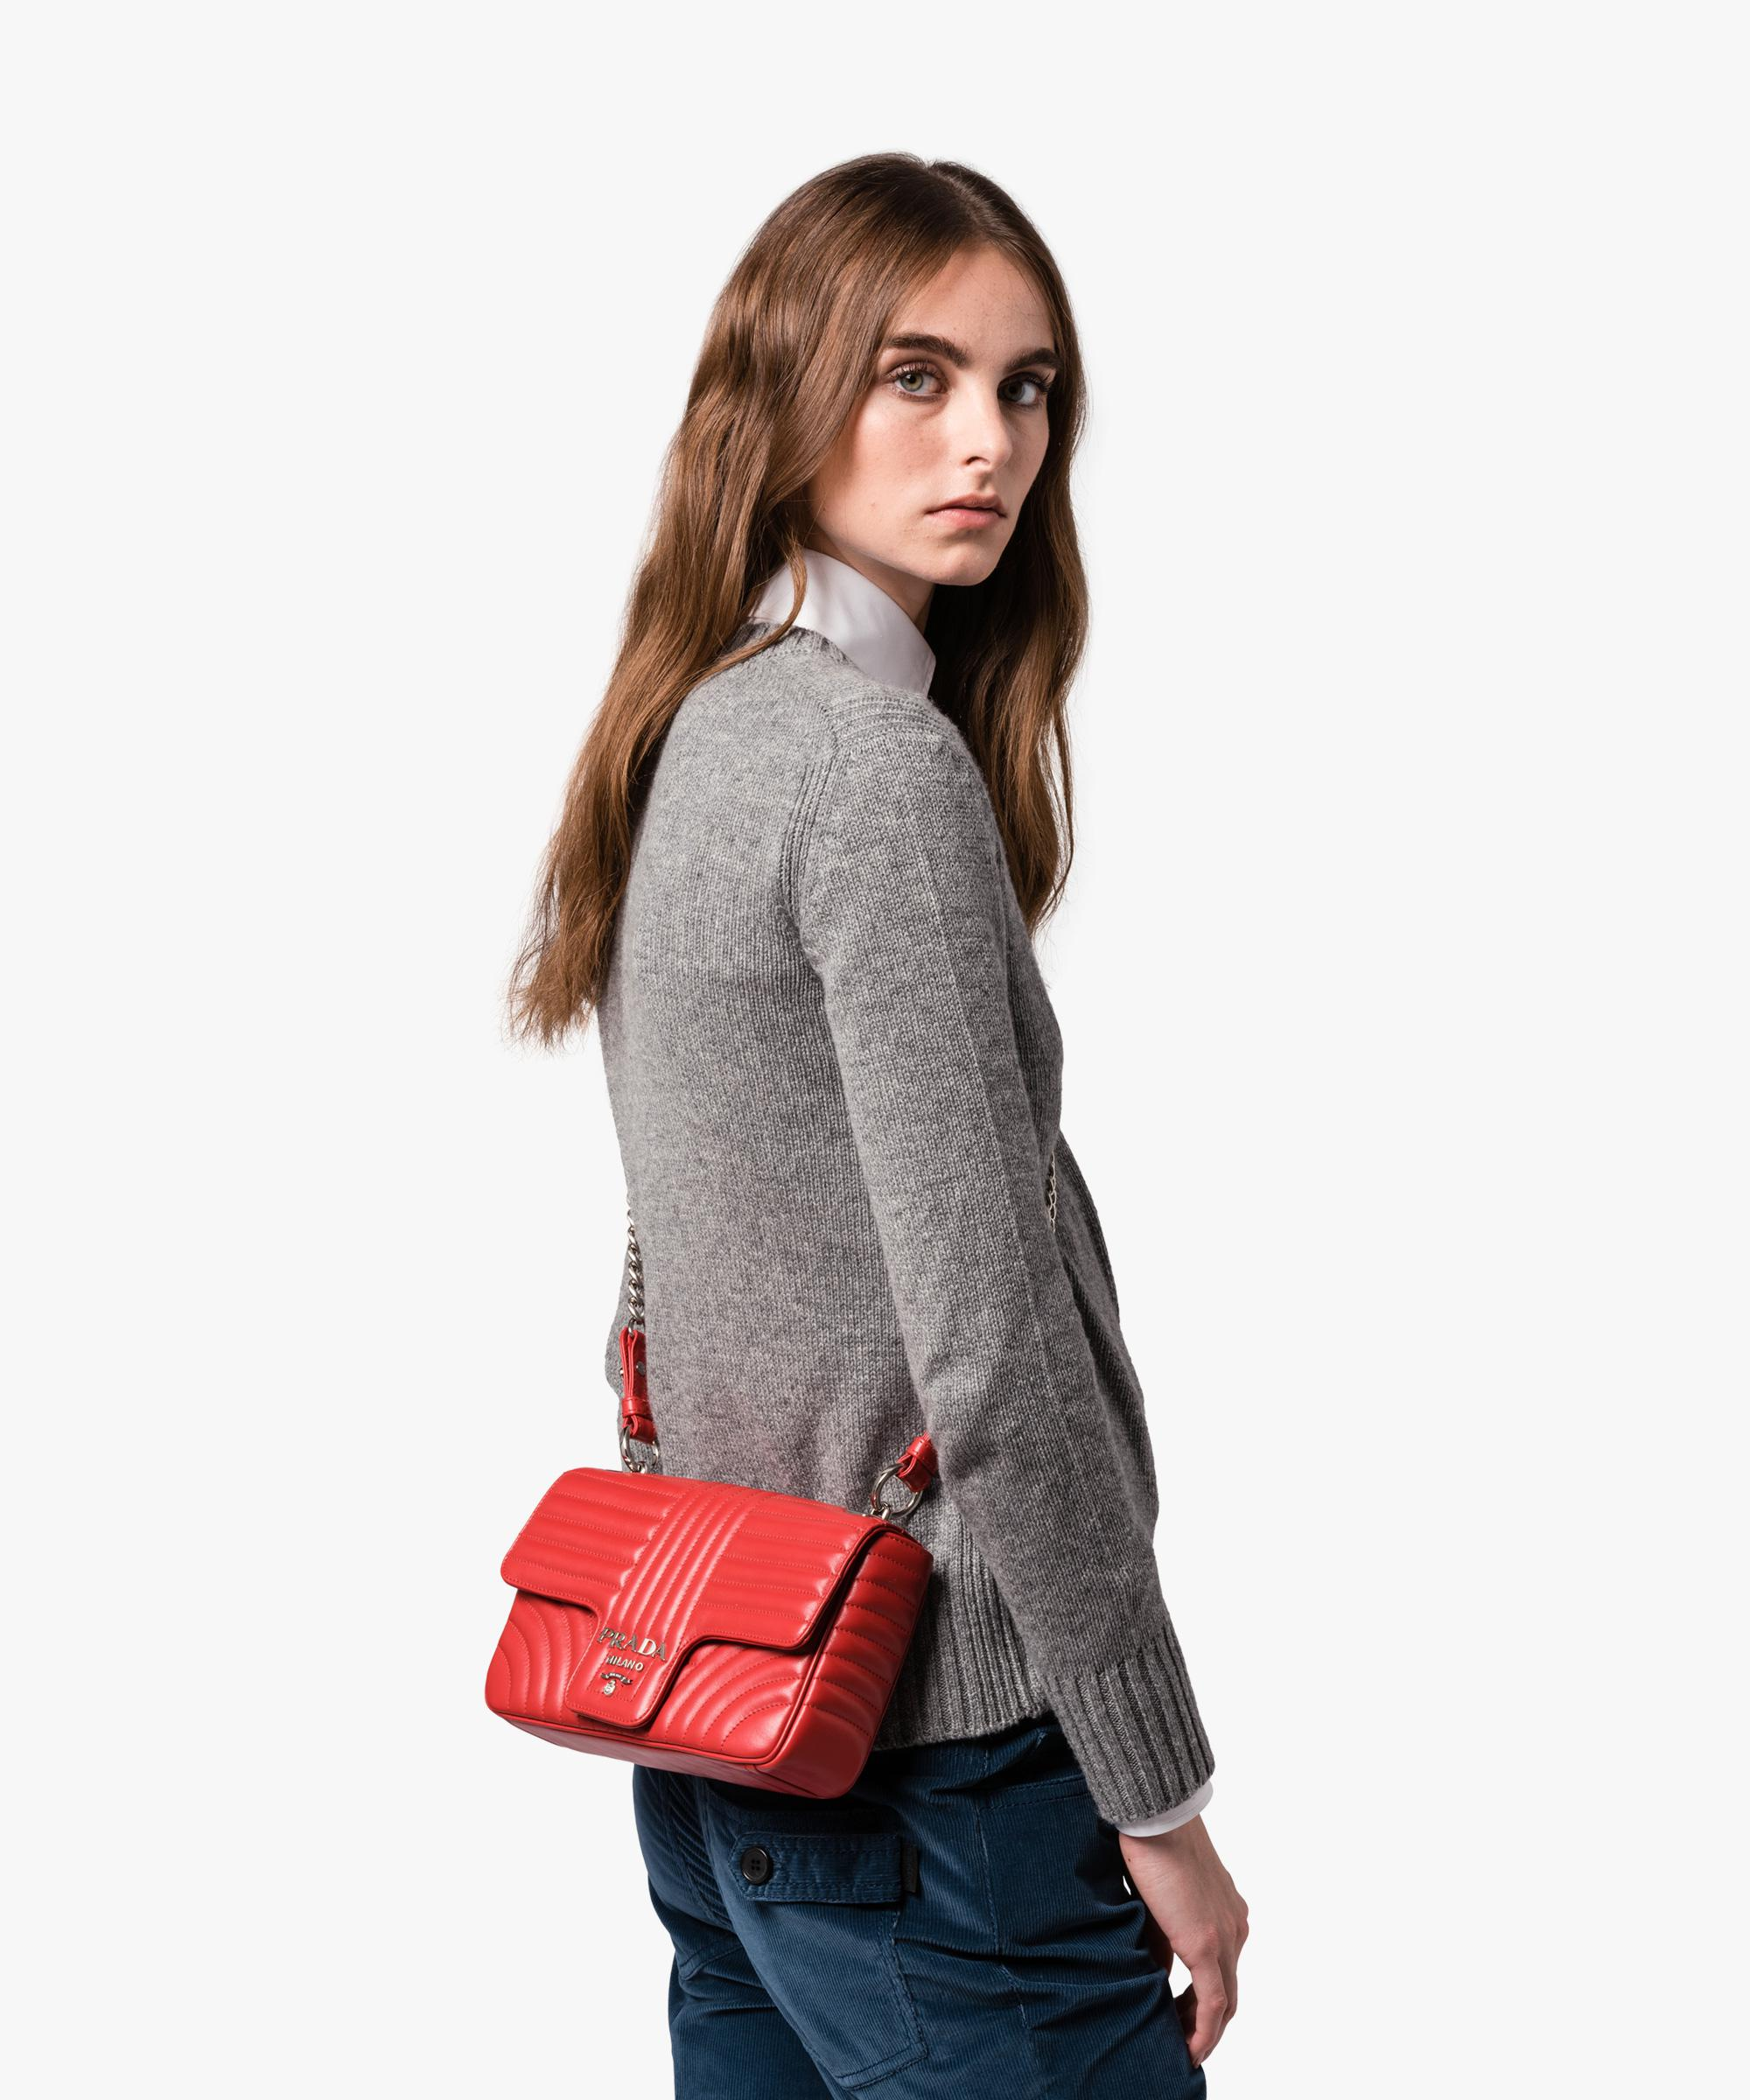 074ad00693f6 Prada Diagramme Leather Shoulder Bag in Red - Lyst